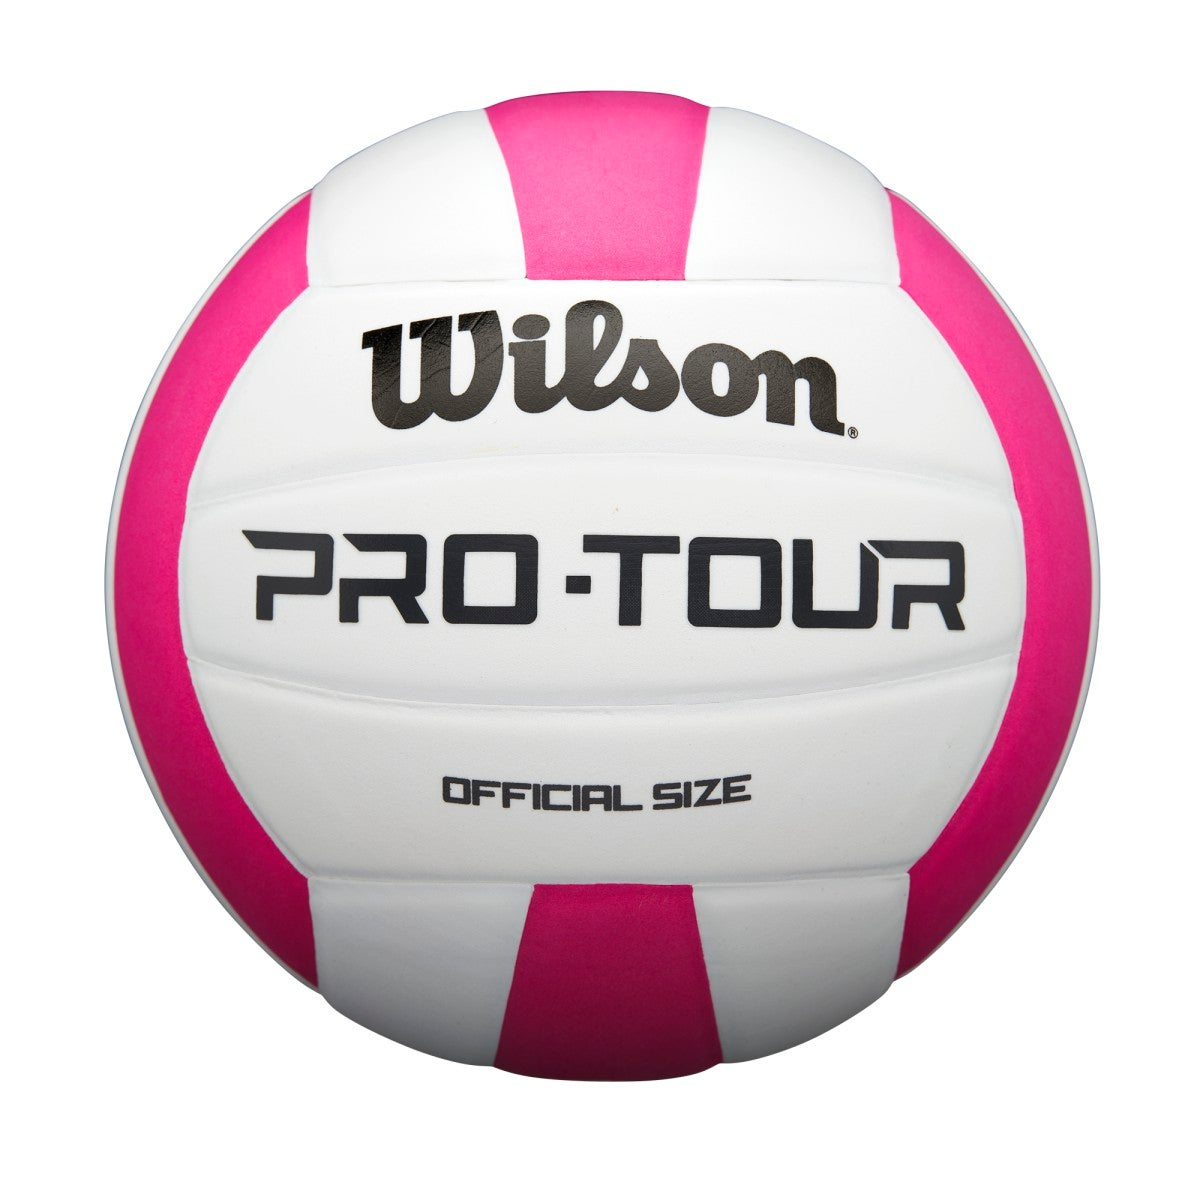 Pro Tour Volleyball